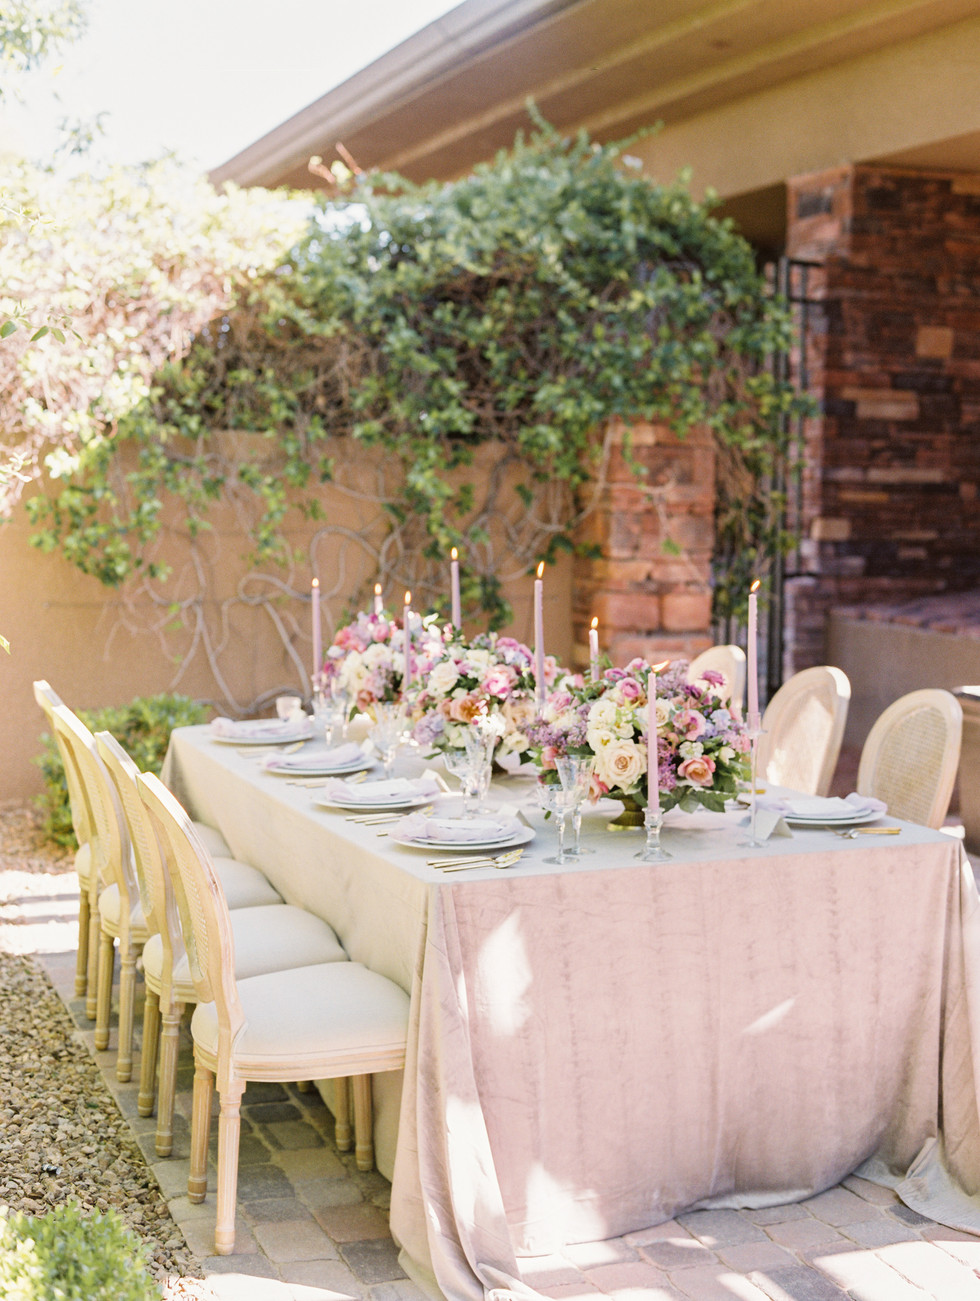 Lavender wedding tablescape. Photo: Gaby Jeter